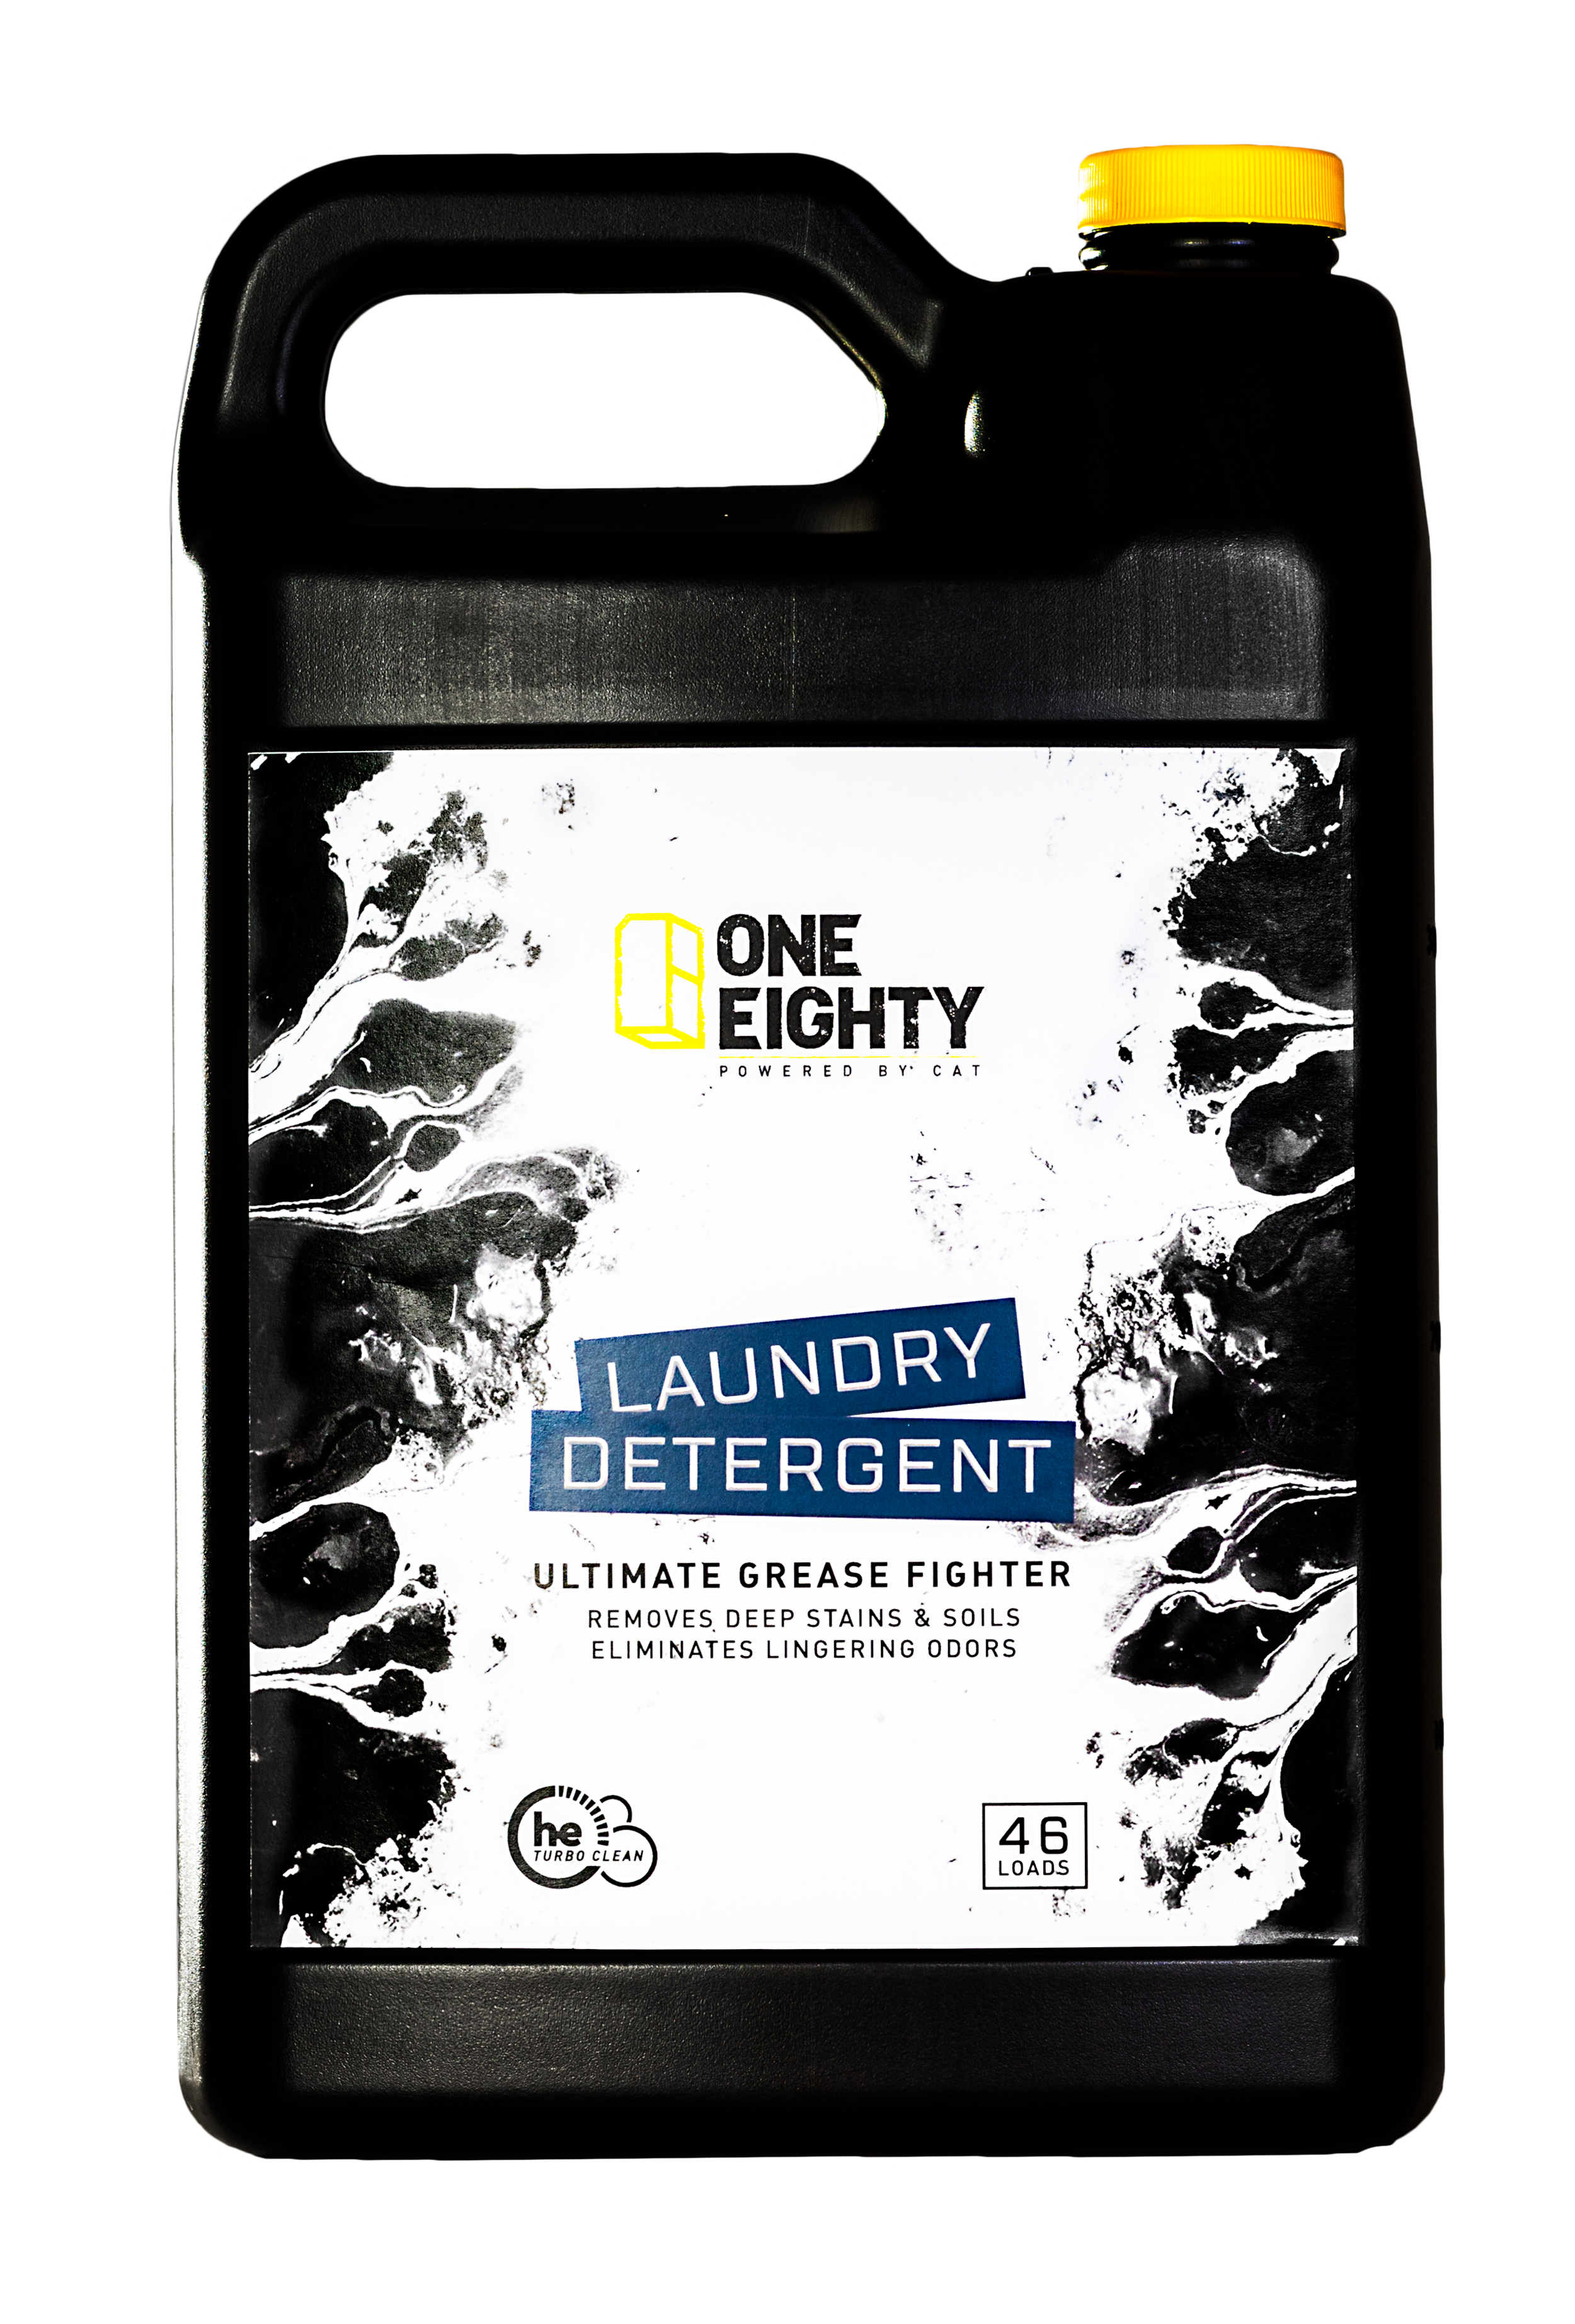 Cat One Eighty Laundry Detergent.png